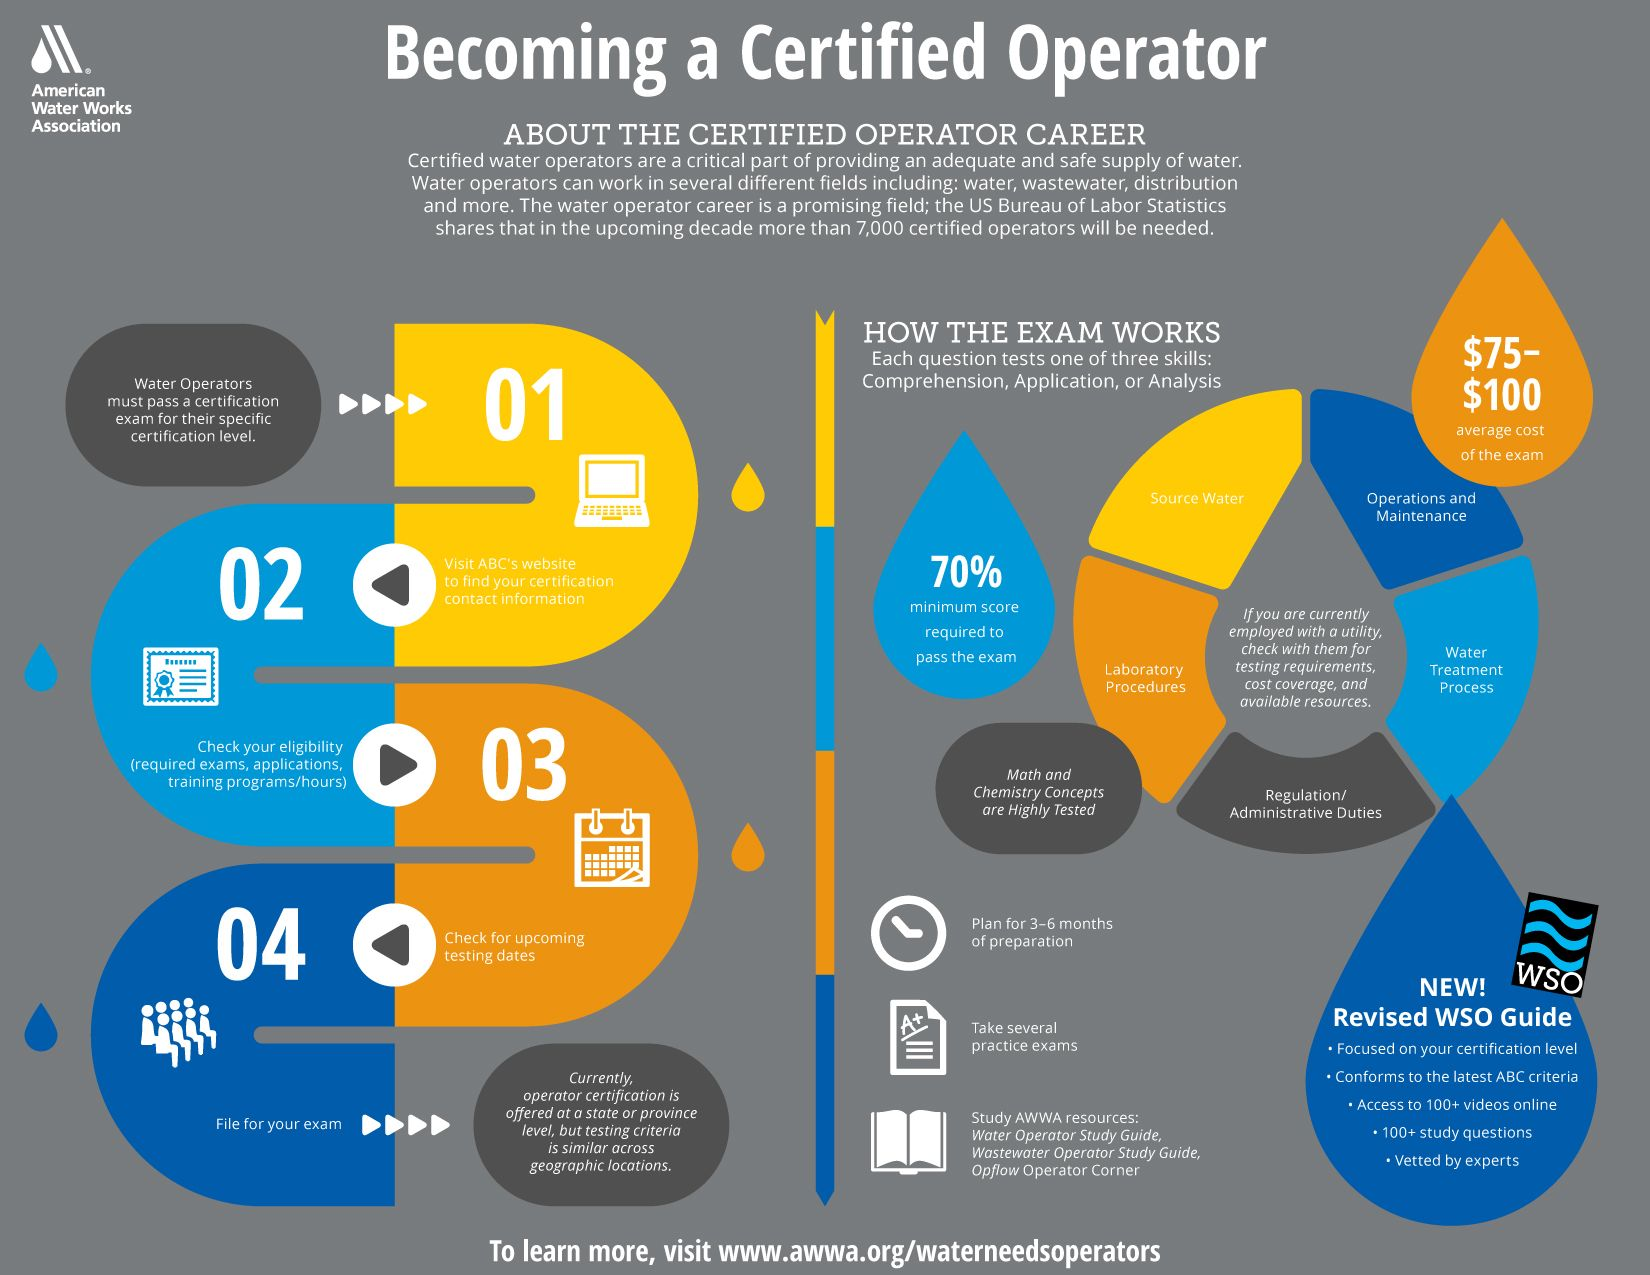 Become A Certified Operator With Images How To Become Career Pathways This Or That Questions